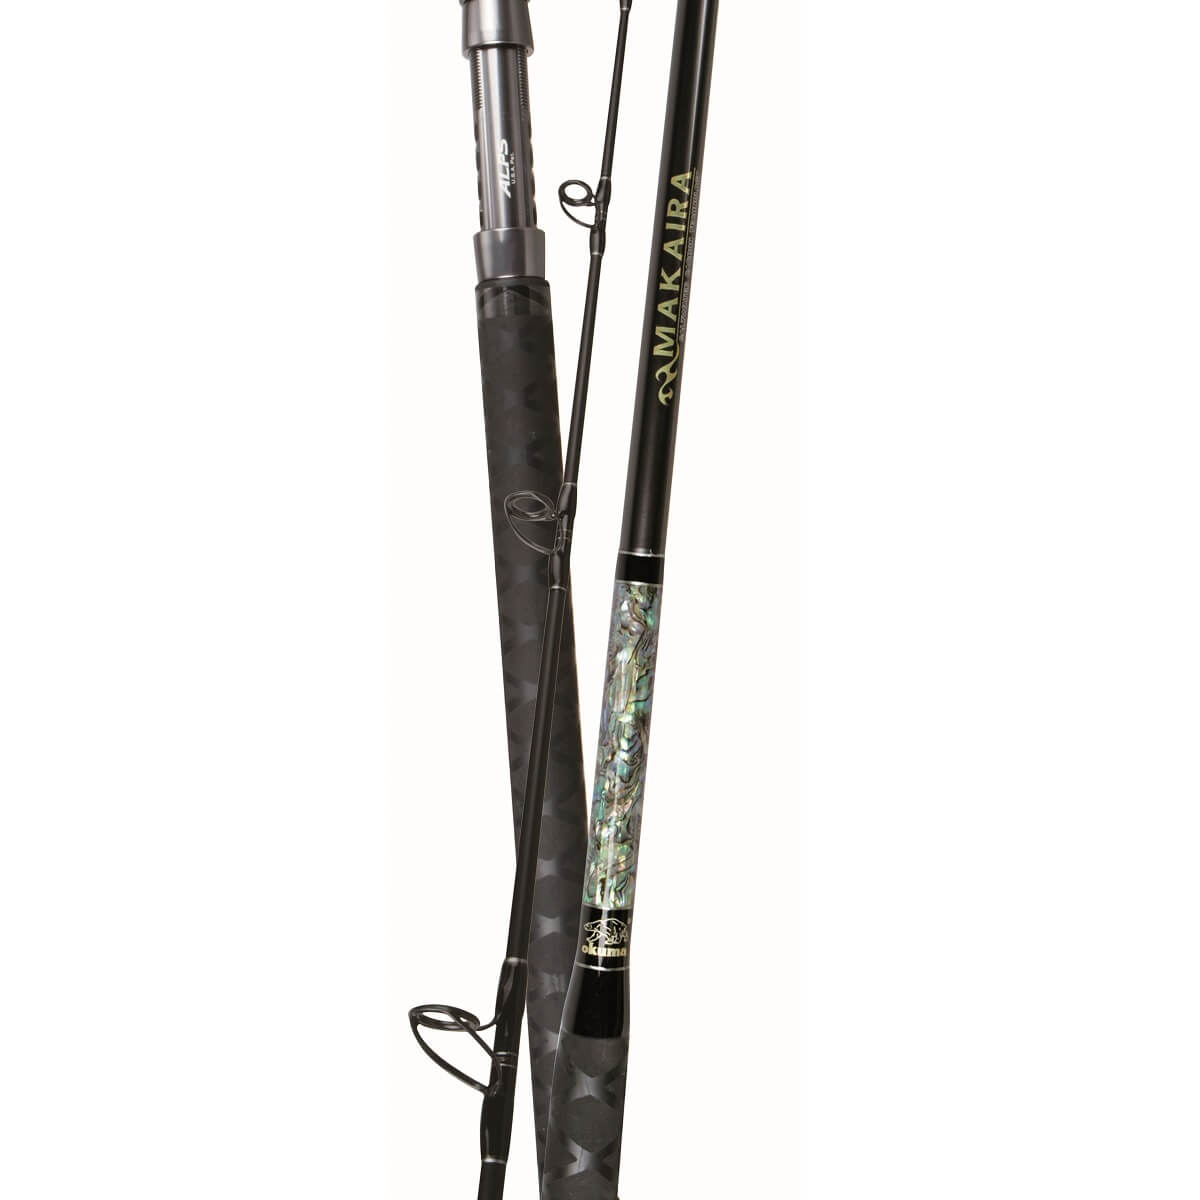 Makaira Saltwater - Okuma Makaira Saltwater Rod-Carbon-Rutenrohling- technology ALPS Deep Press 316-Führungsrahmen aus rostfreiem Stahl - Einzigartiges integriertes Butt-Cap-Design